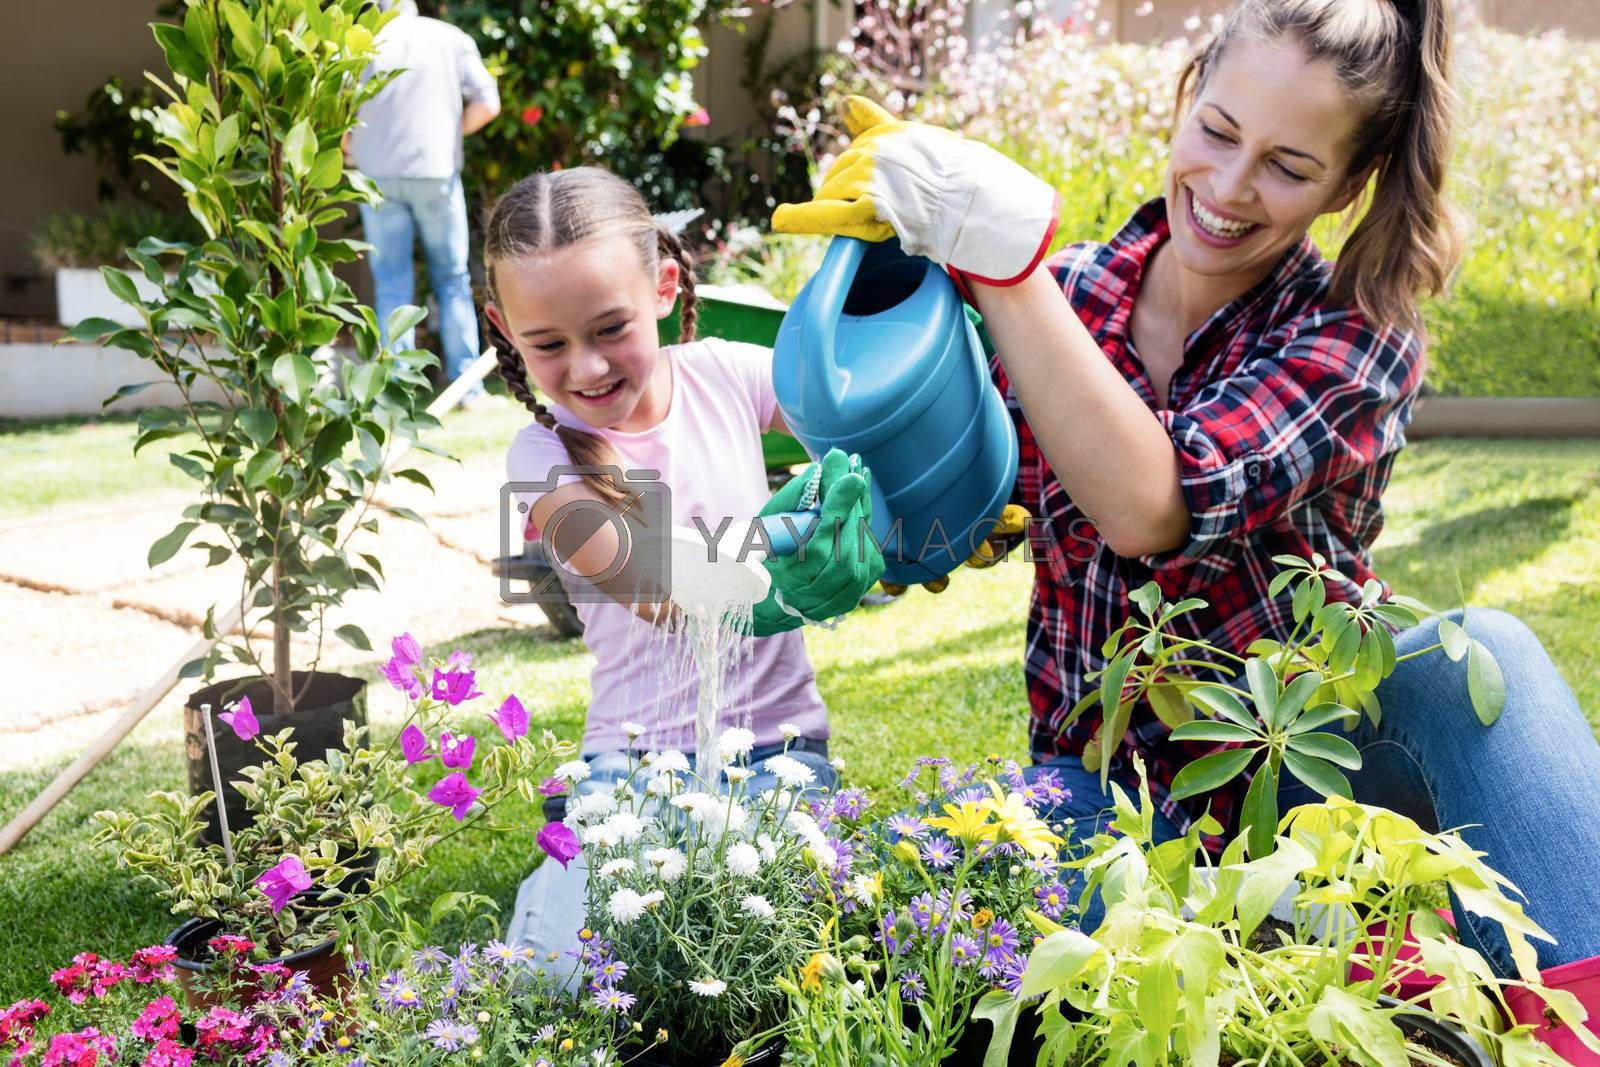 Mother and daughter watering the plants in the garden on a sunny day